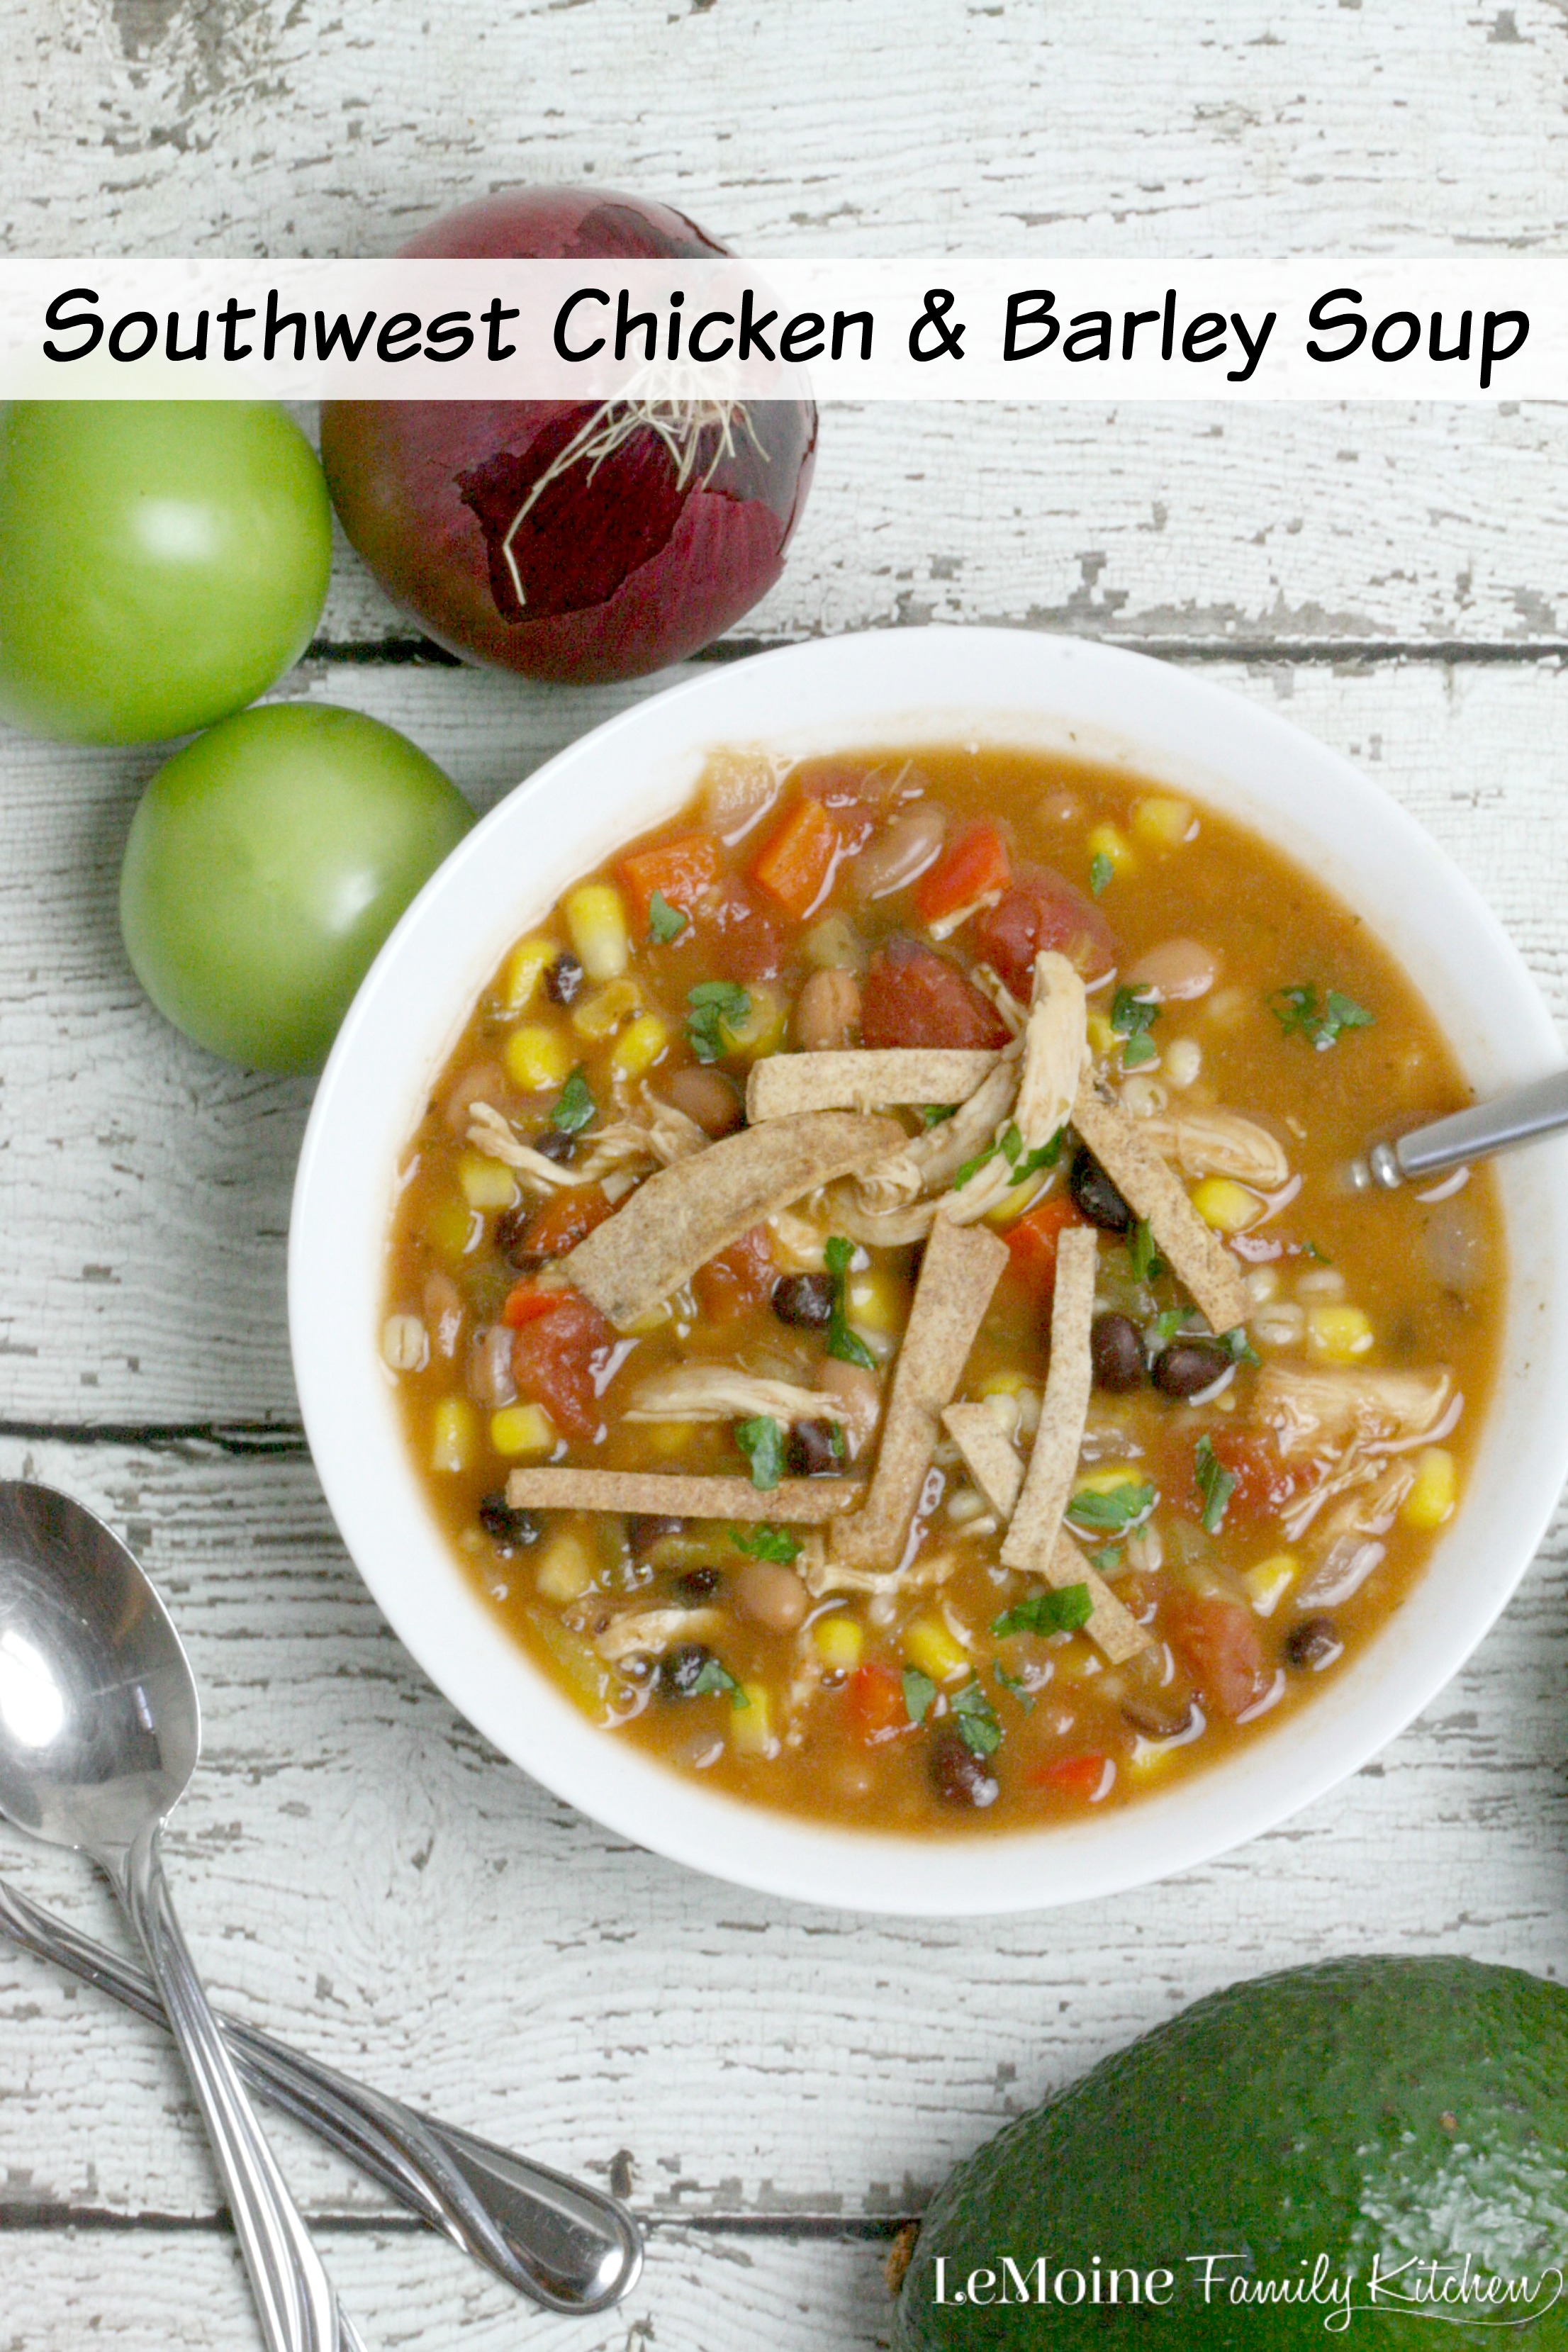 Southwest Chicken & Barley Soup